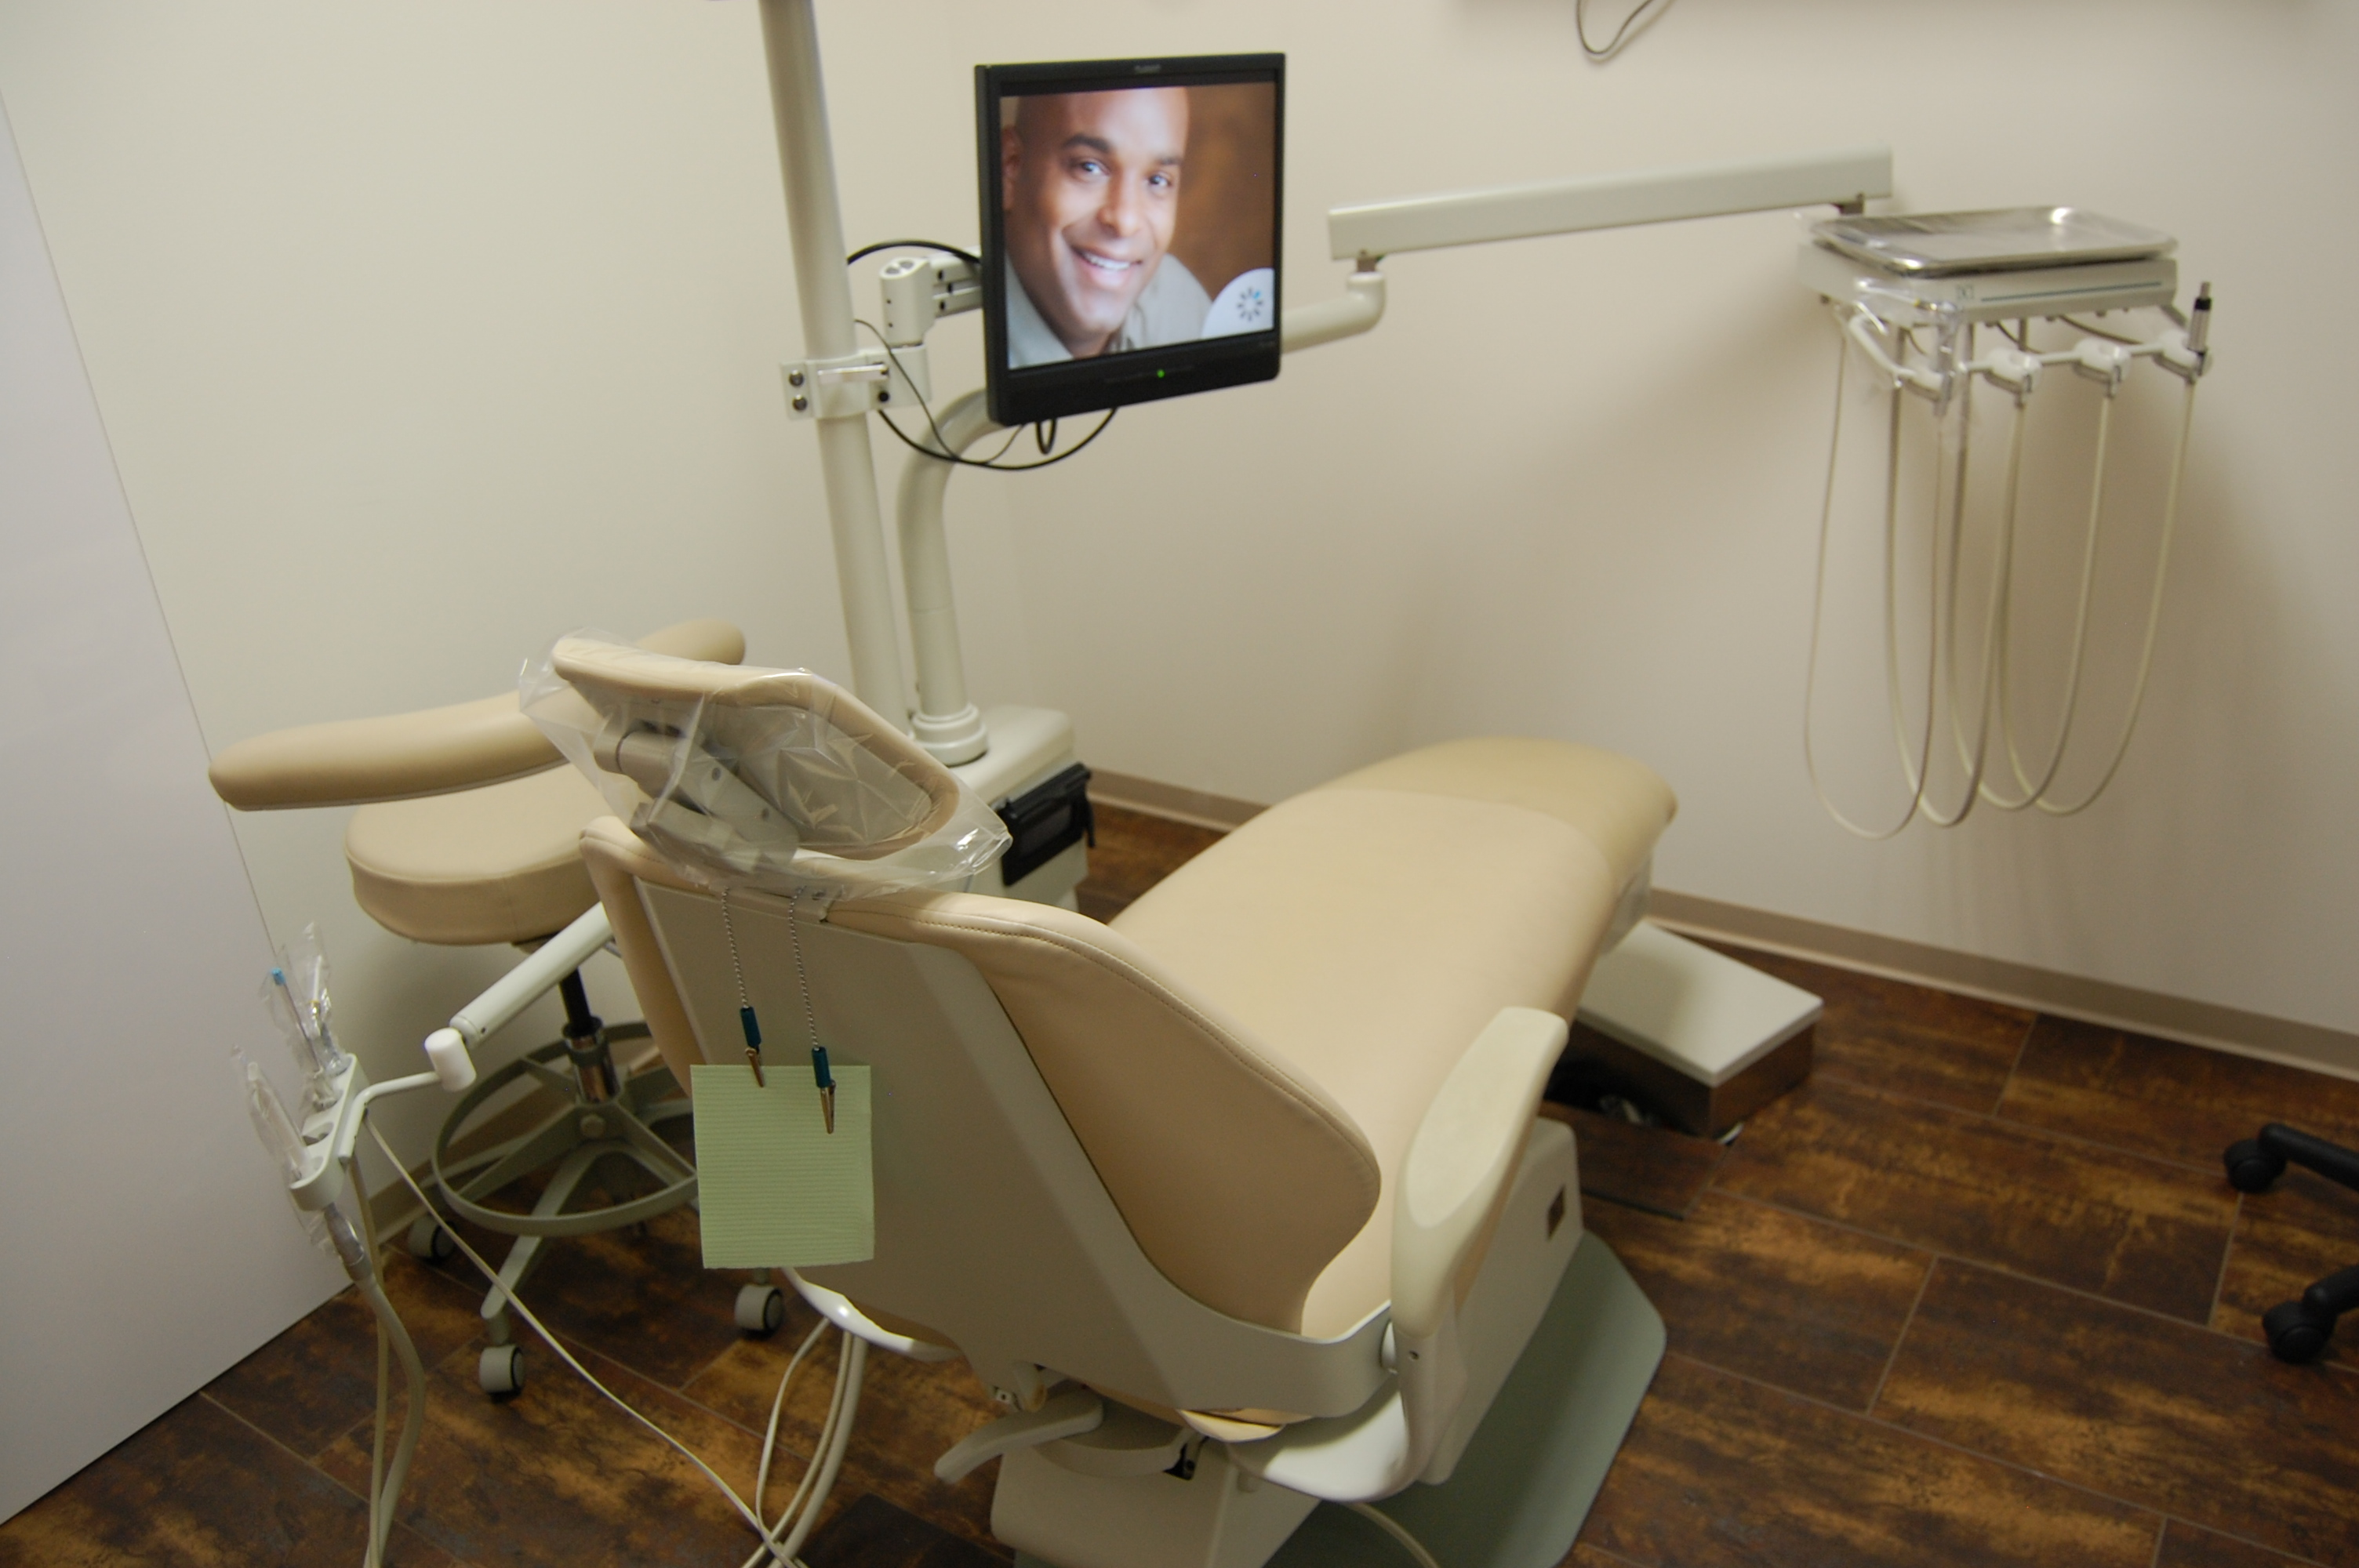 The Heights Modern Dentistry image 14